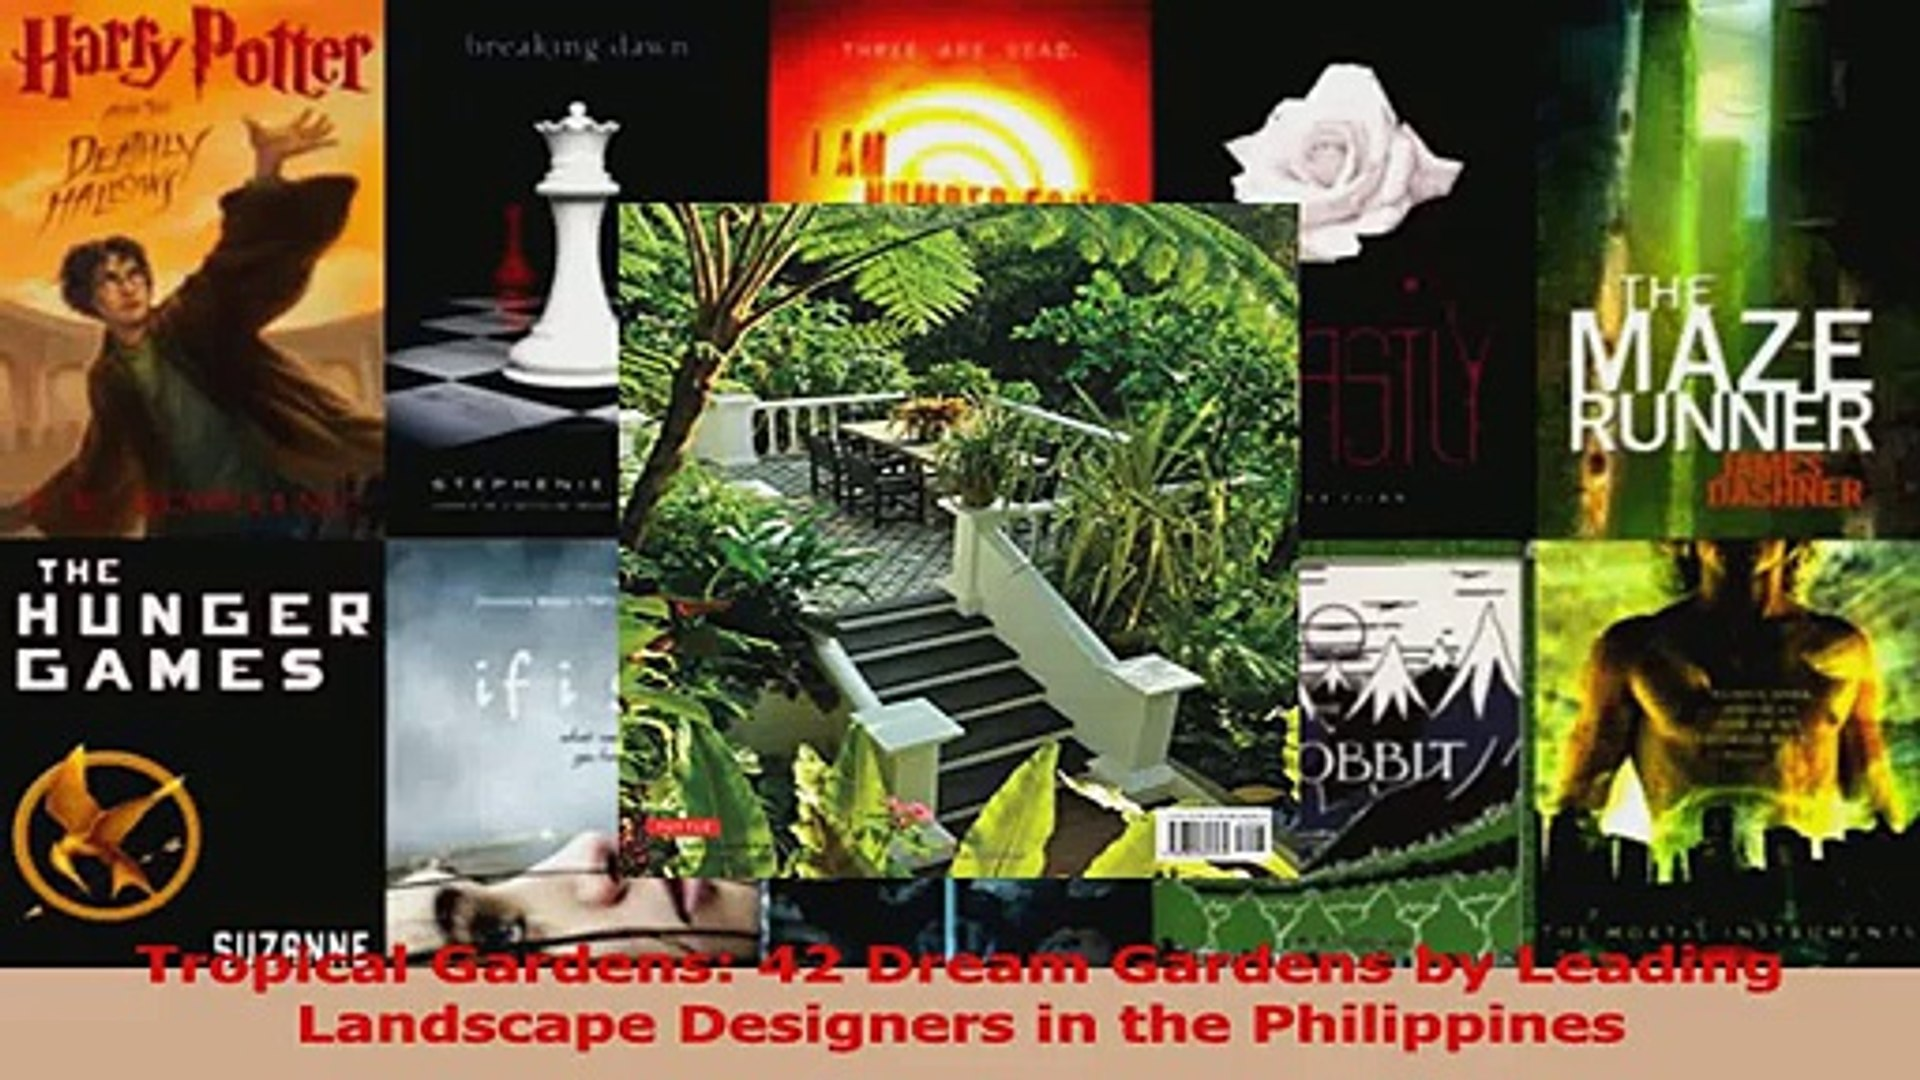 PDF Download  Tropical Gardens 42 Dream Gardens by Leading Landscape Designers in the Philippines PD